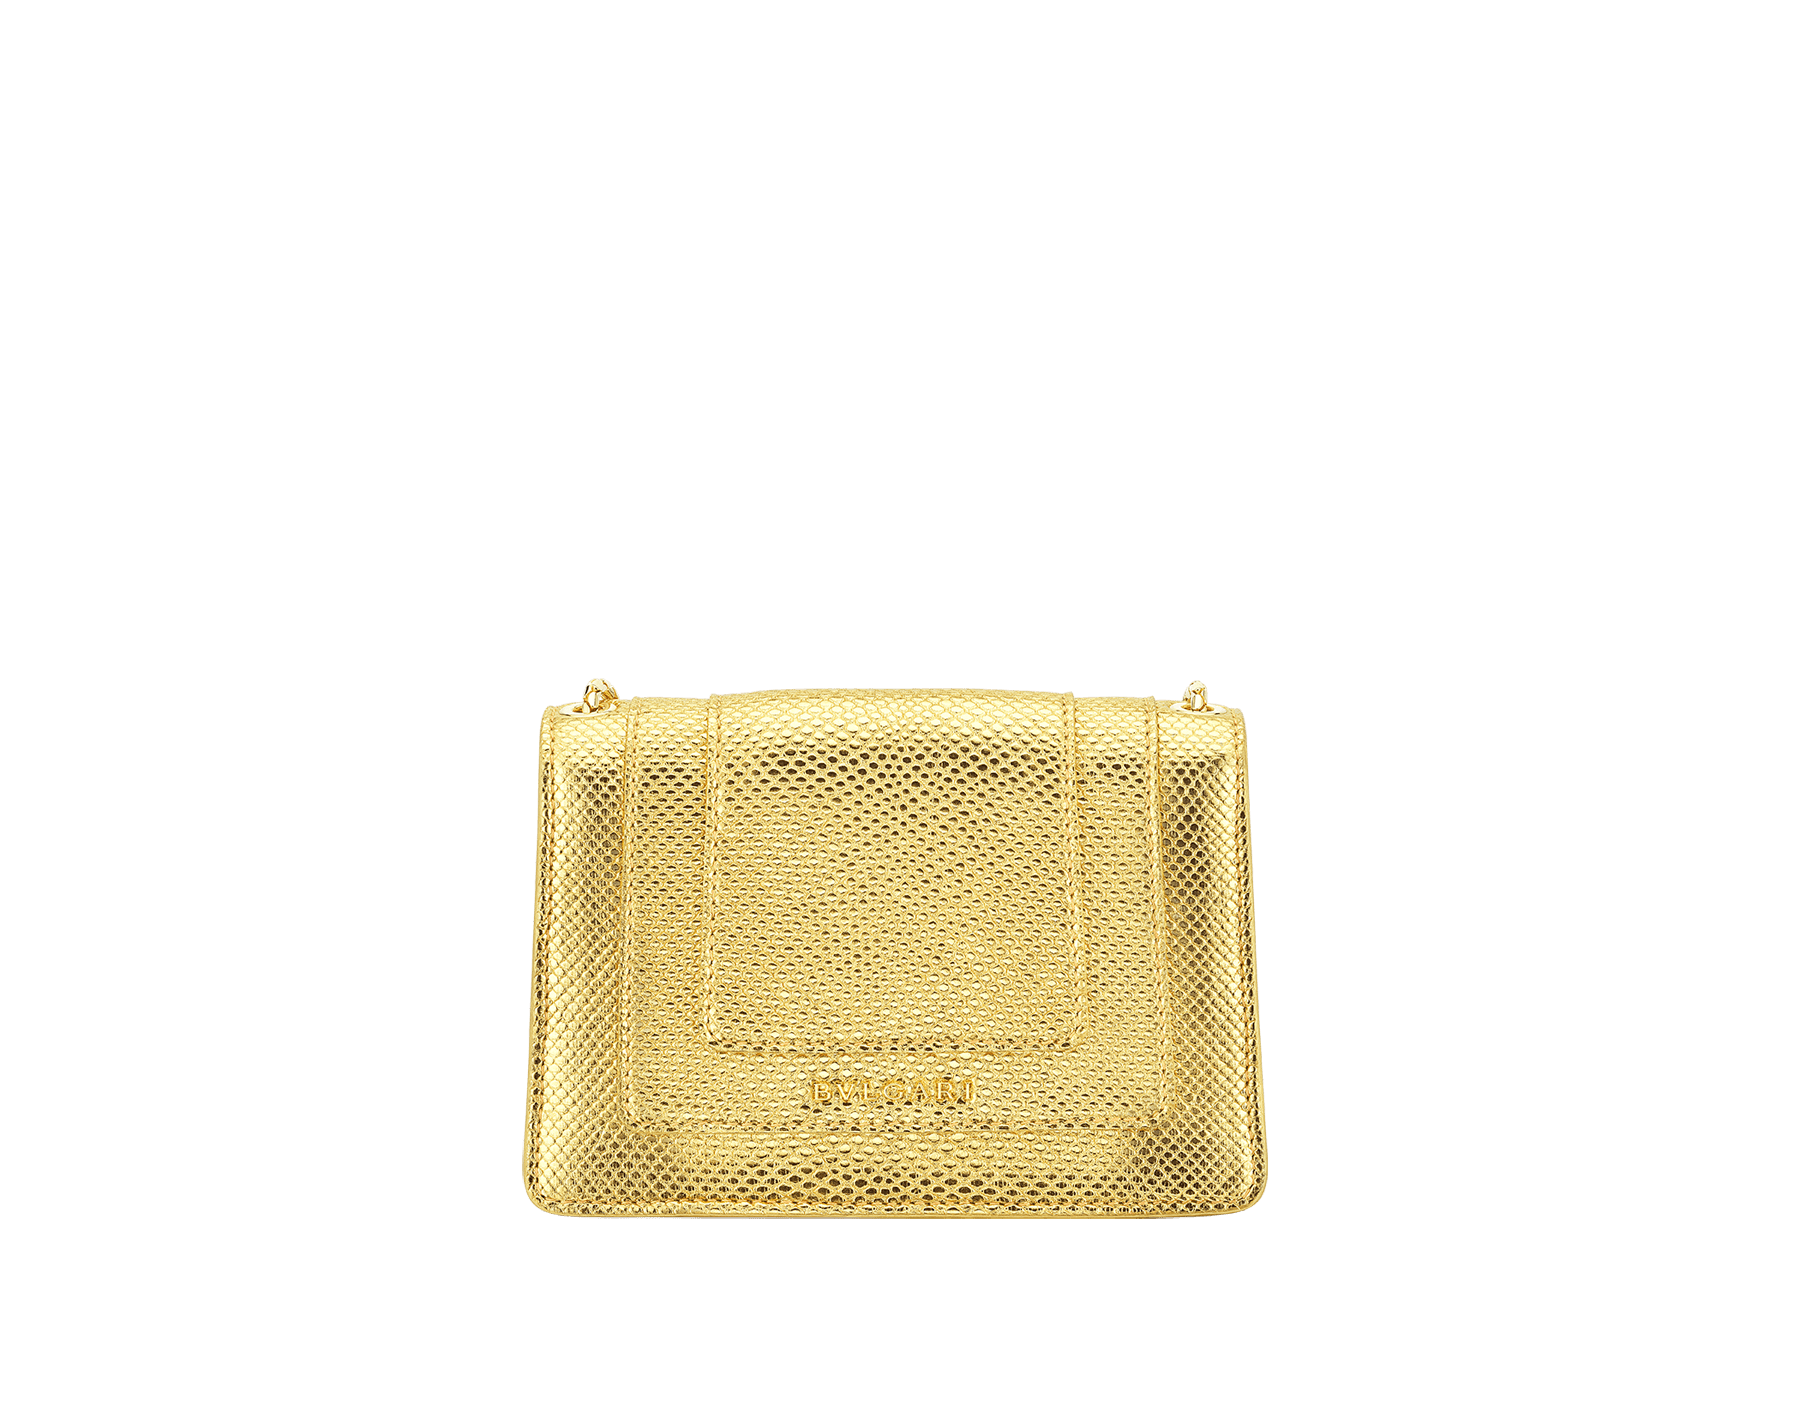 """Serpenti Forever"" mini crossbody bag in ""Molten"" gold karung skin with black nappa leather inner lining, offering a touch of radiance for the Winter Holidays. New Serpenti head closure in gold-plated brass, complete with ruby-red enamel eyes. 290619 image 3"